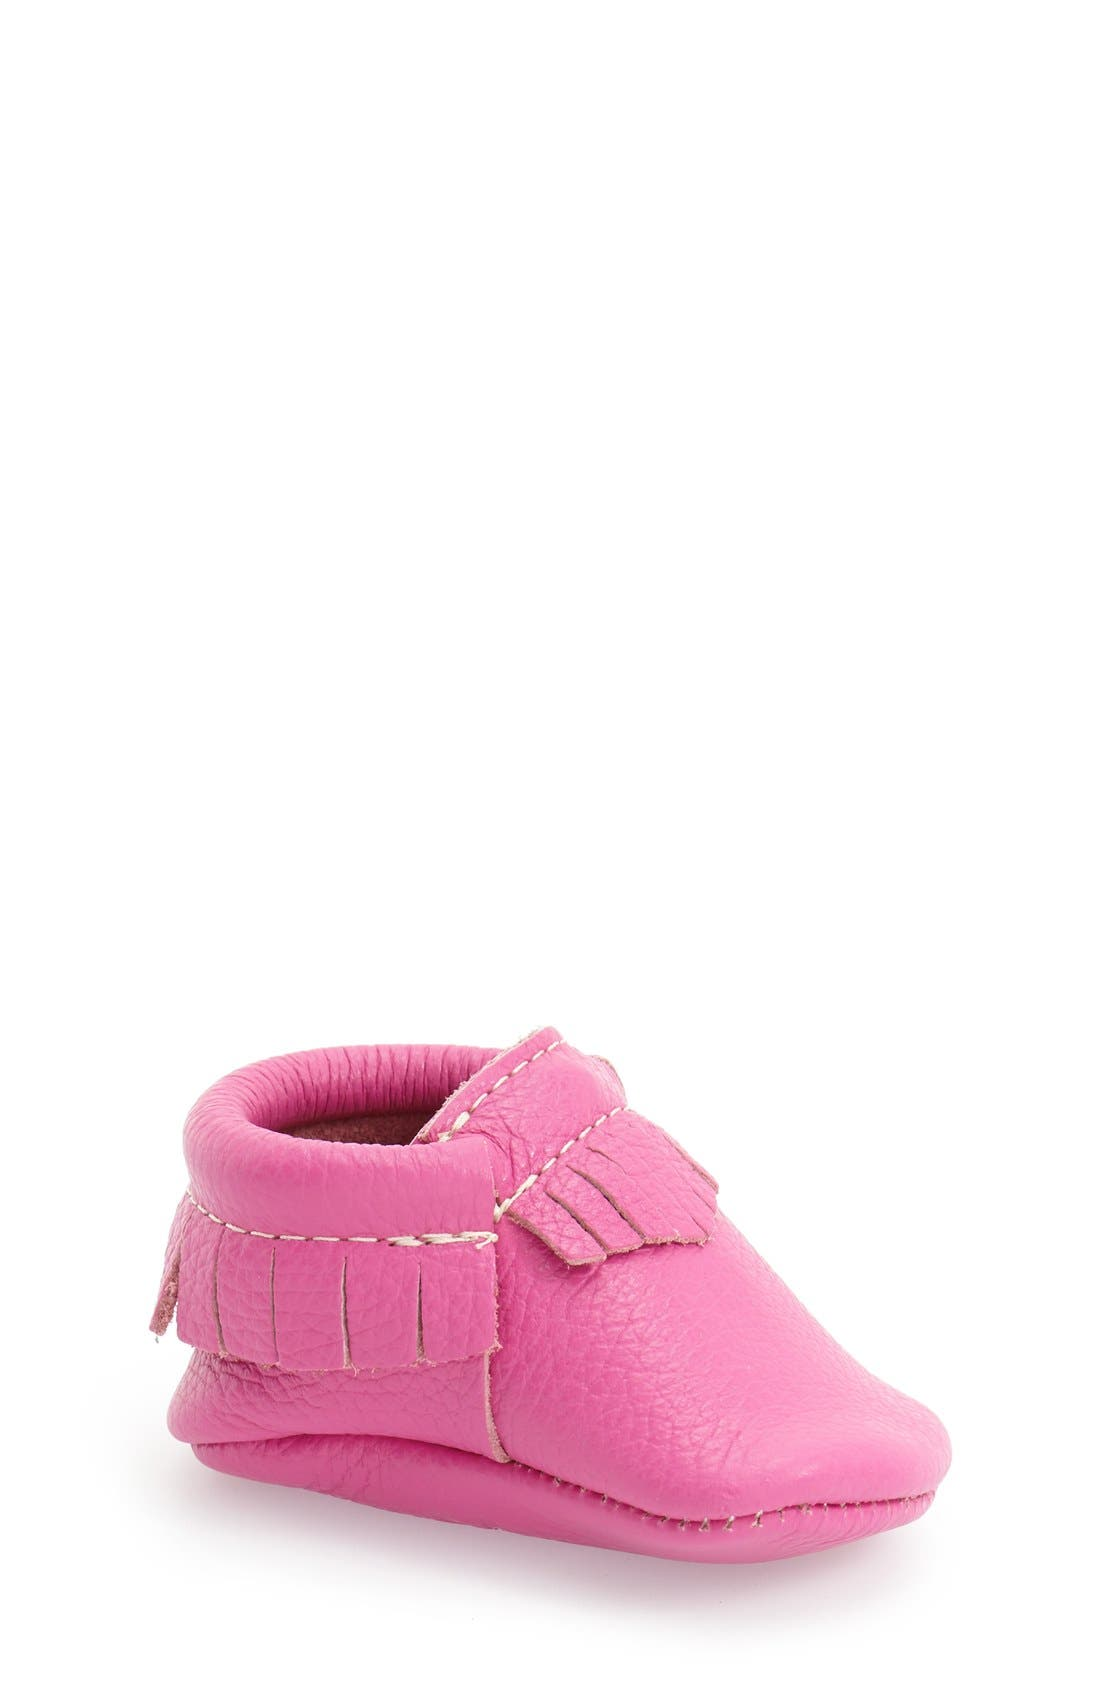 Alternate Image 1 Selected - Freshly Picked Leather Moccasin (Baby & Walker)